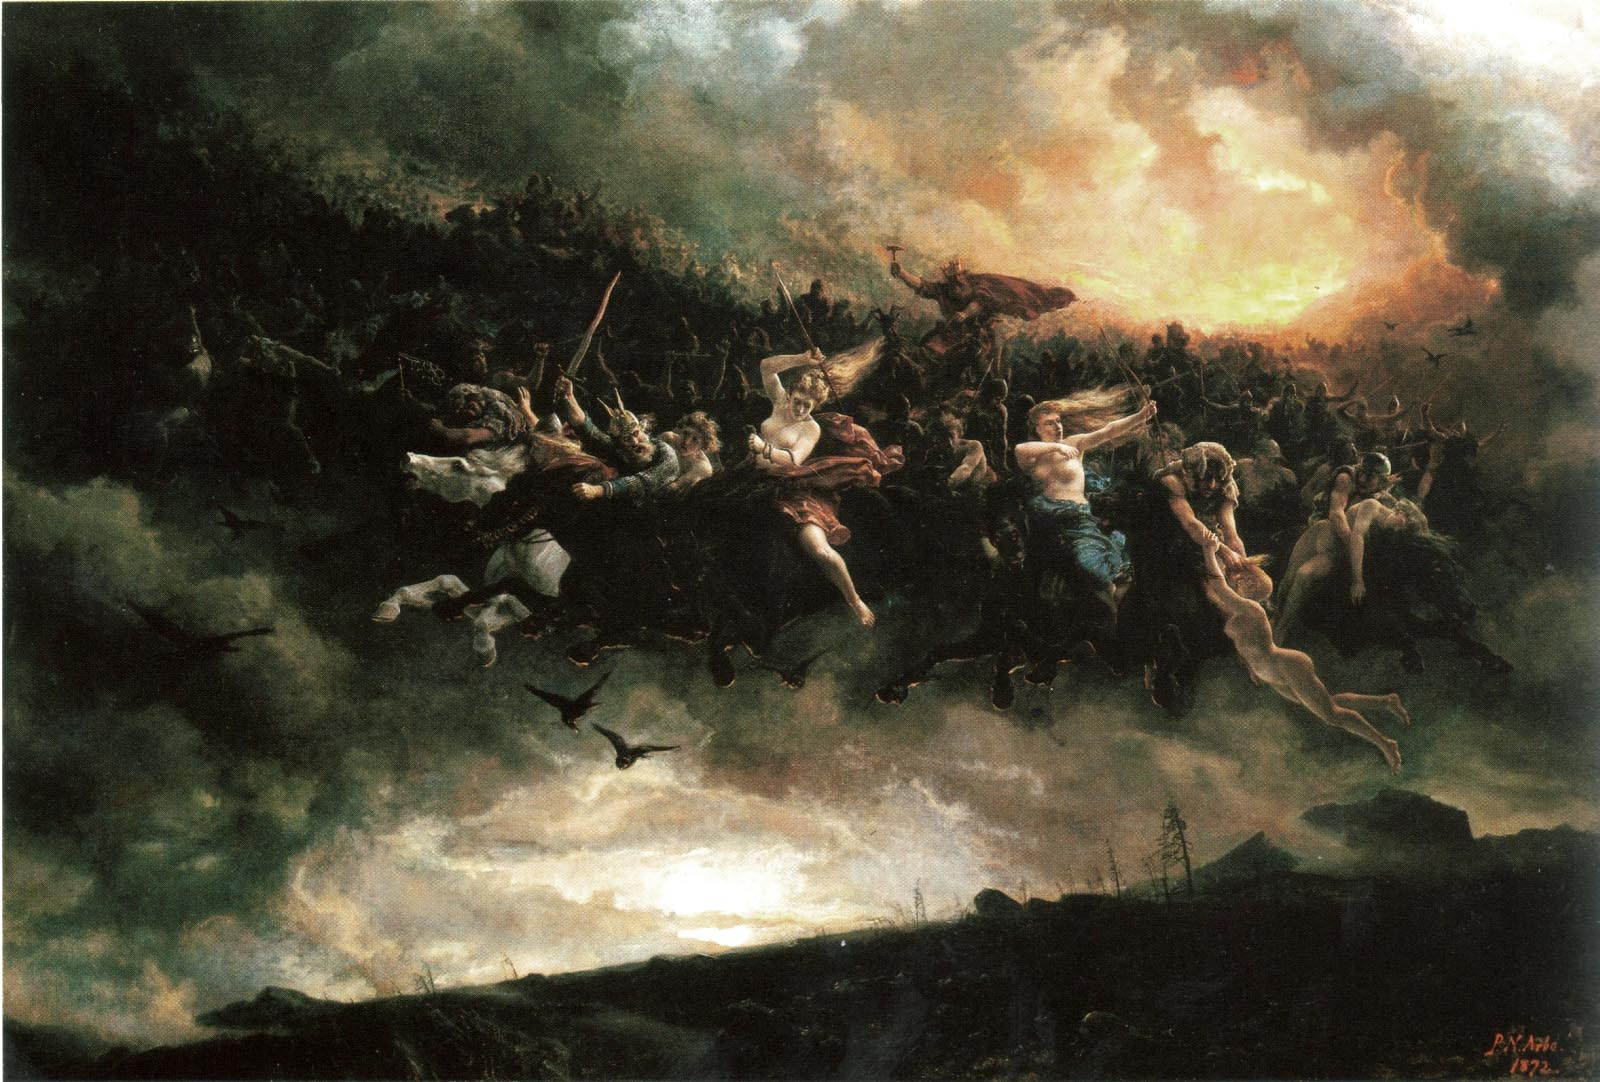 Oil on canvas rendering of the Wild Hunt, currently on display in the National Gallery, Norway © Peter Nicolai Arbo https://commons.wikimedia.org/wiki/File:Aasgaardreien_peter_nicolai_arbo_mindre.jpg